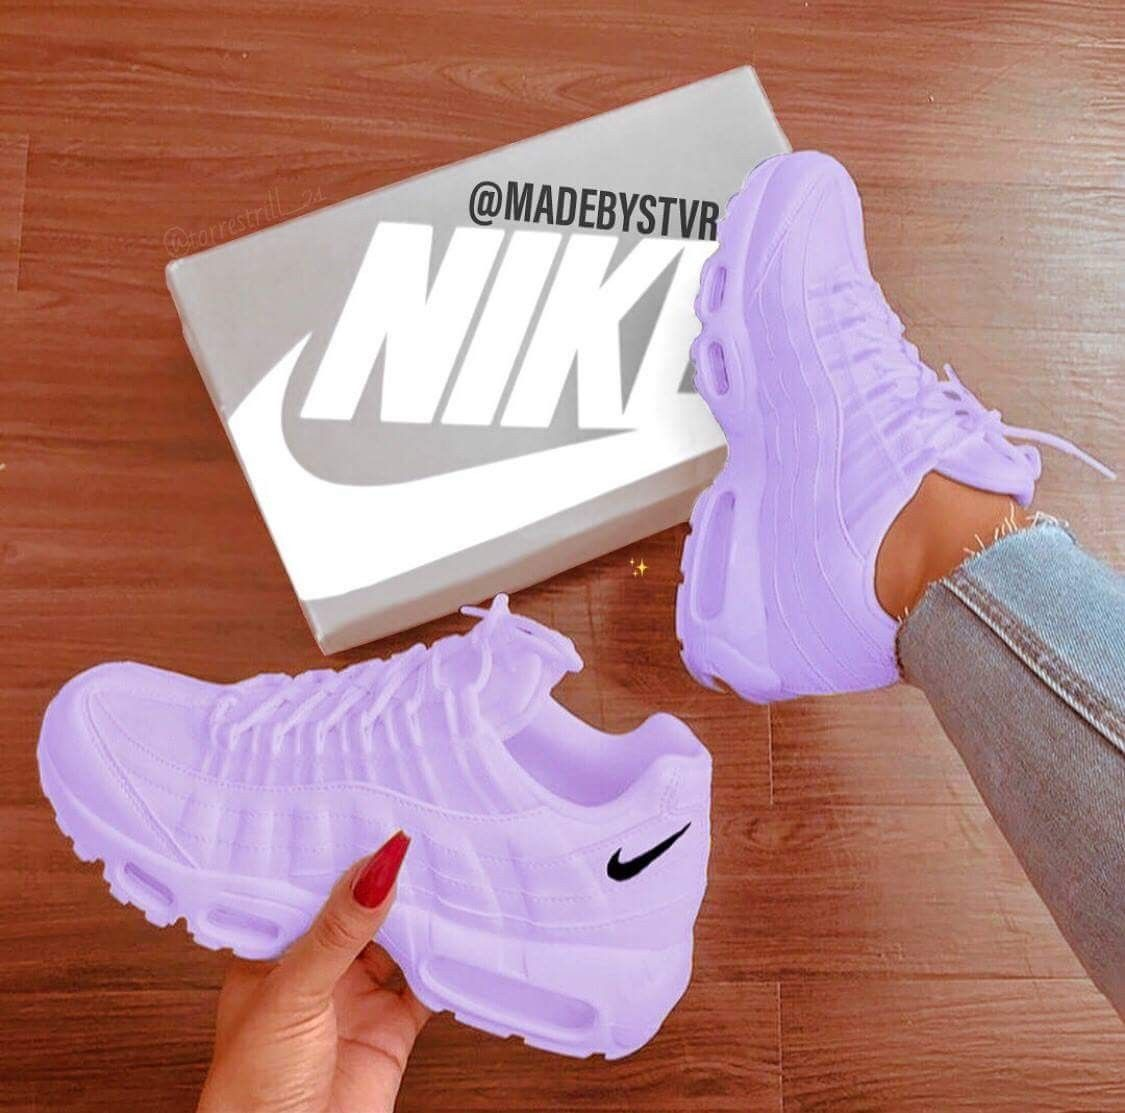 16 Best Cute Shoes images in 2020 | Cute shoes, Sneakers, Me